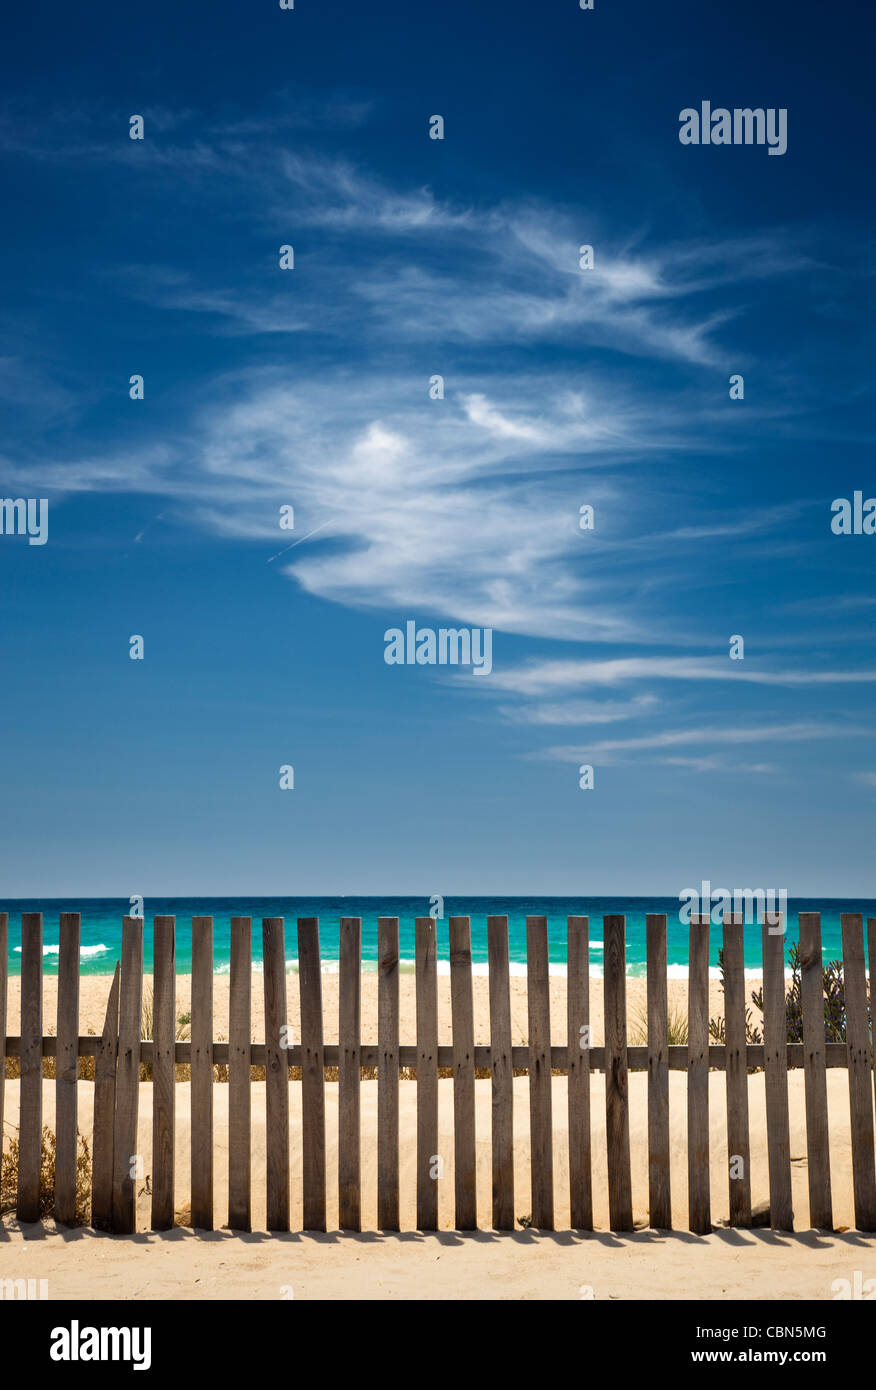 sky with clouds on the beach with a wooden fence - Stock Image